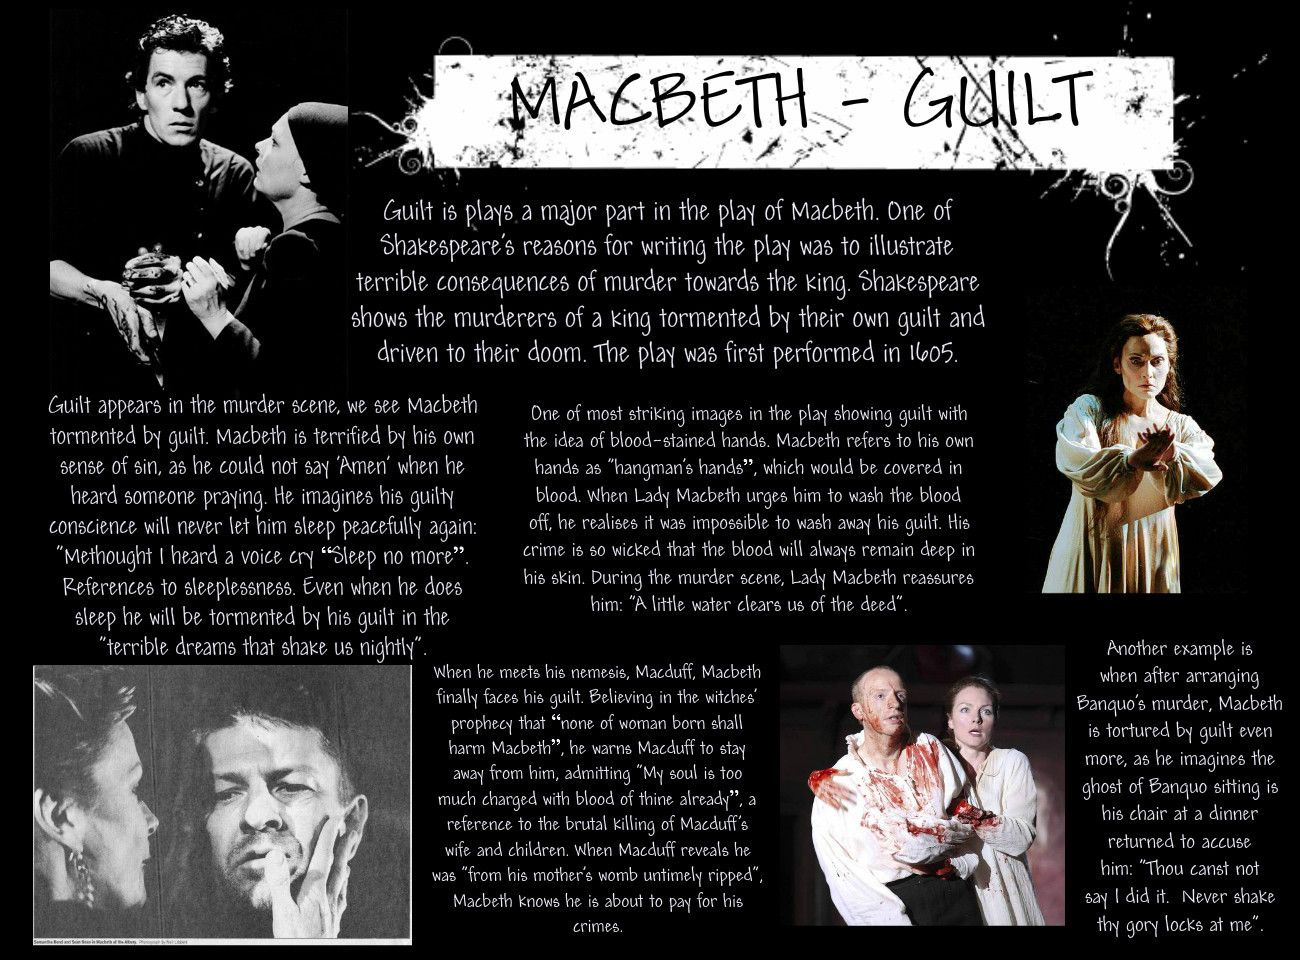 guilt a major theme in macbeth not only scene in macbeth when  guilt a major theme in macbeth not only scene in macbeth when murdering duncan